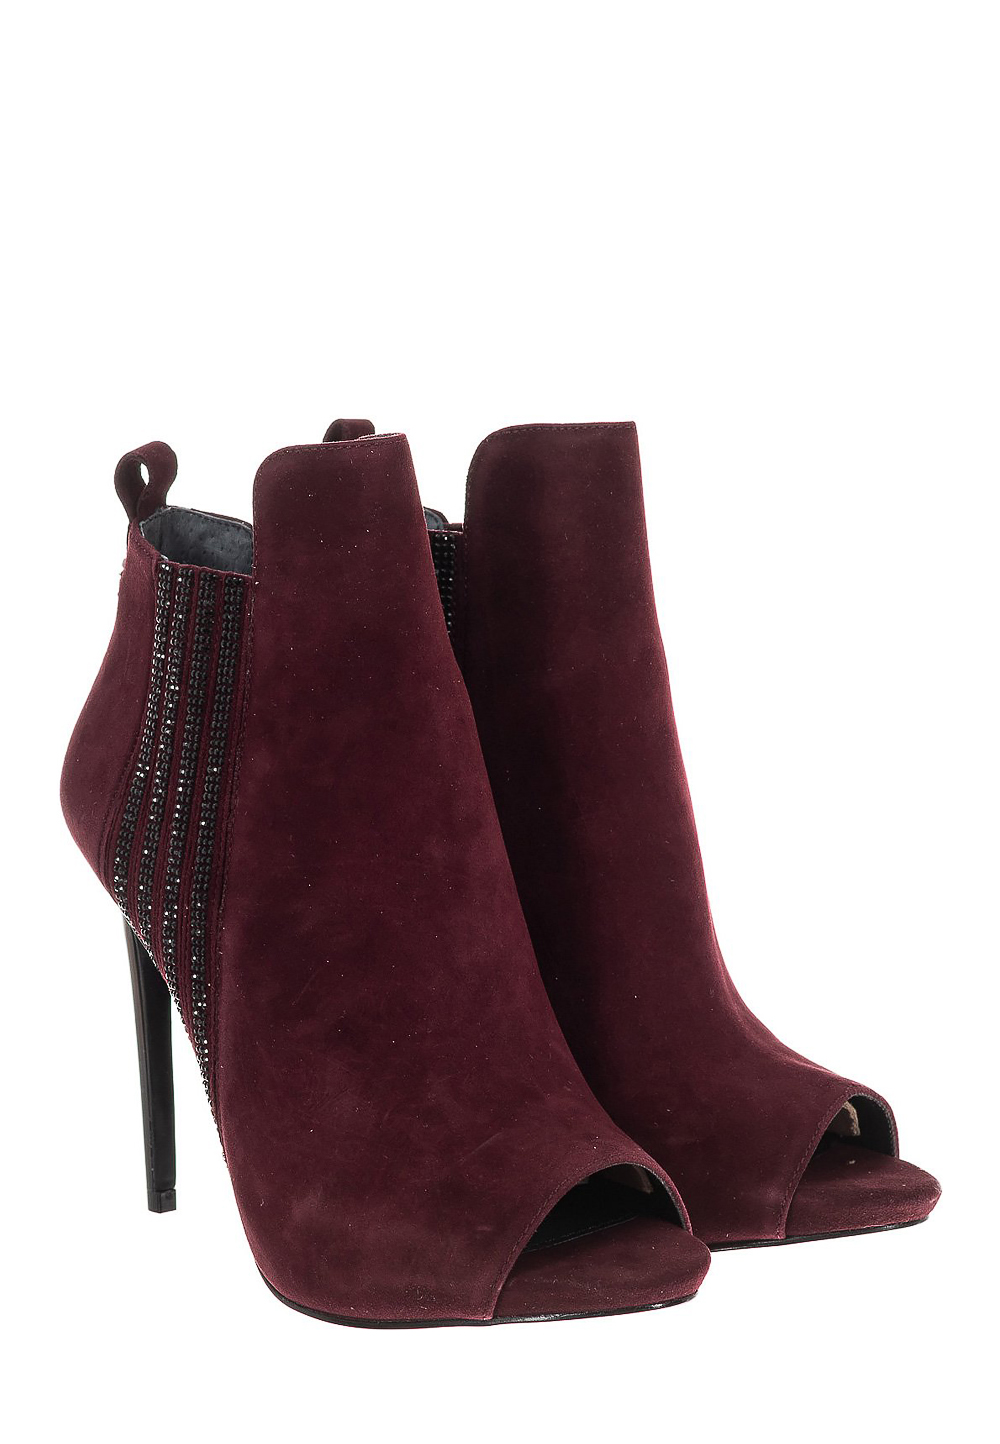 Guess Ankle-Boots, Absatz 11 cm, bordeaux rot | Schuhe > Stiefeletten > Ankleboots | Rot | Guess